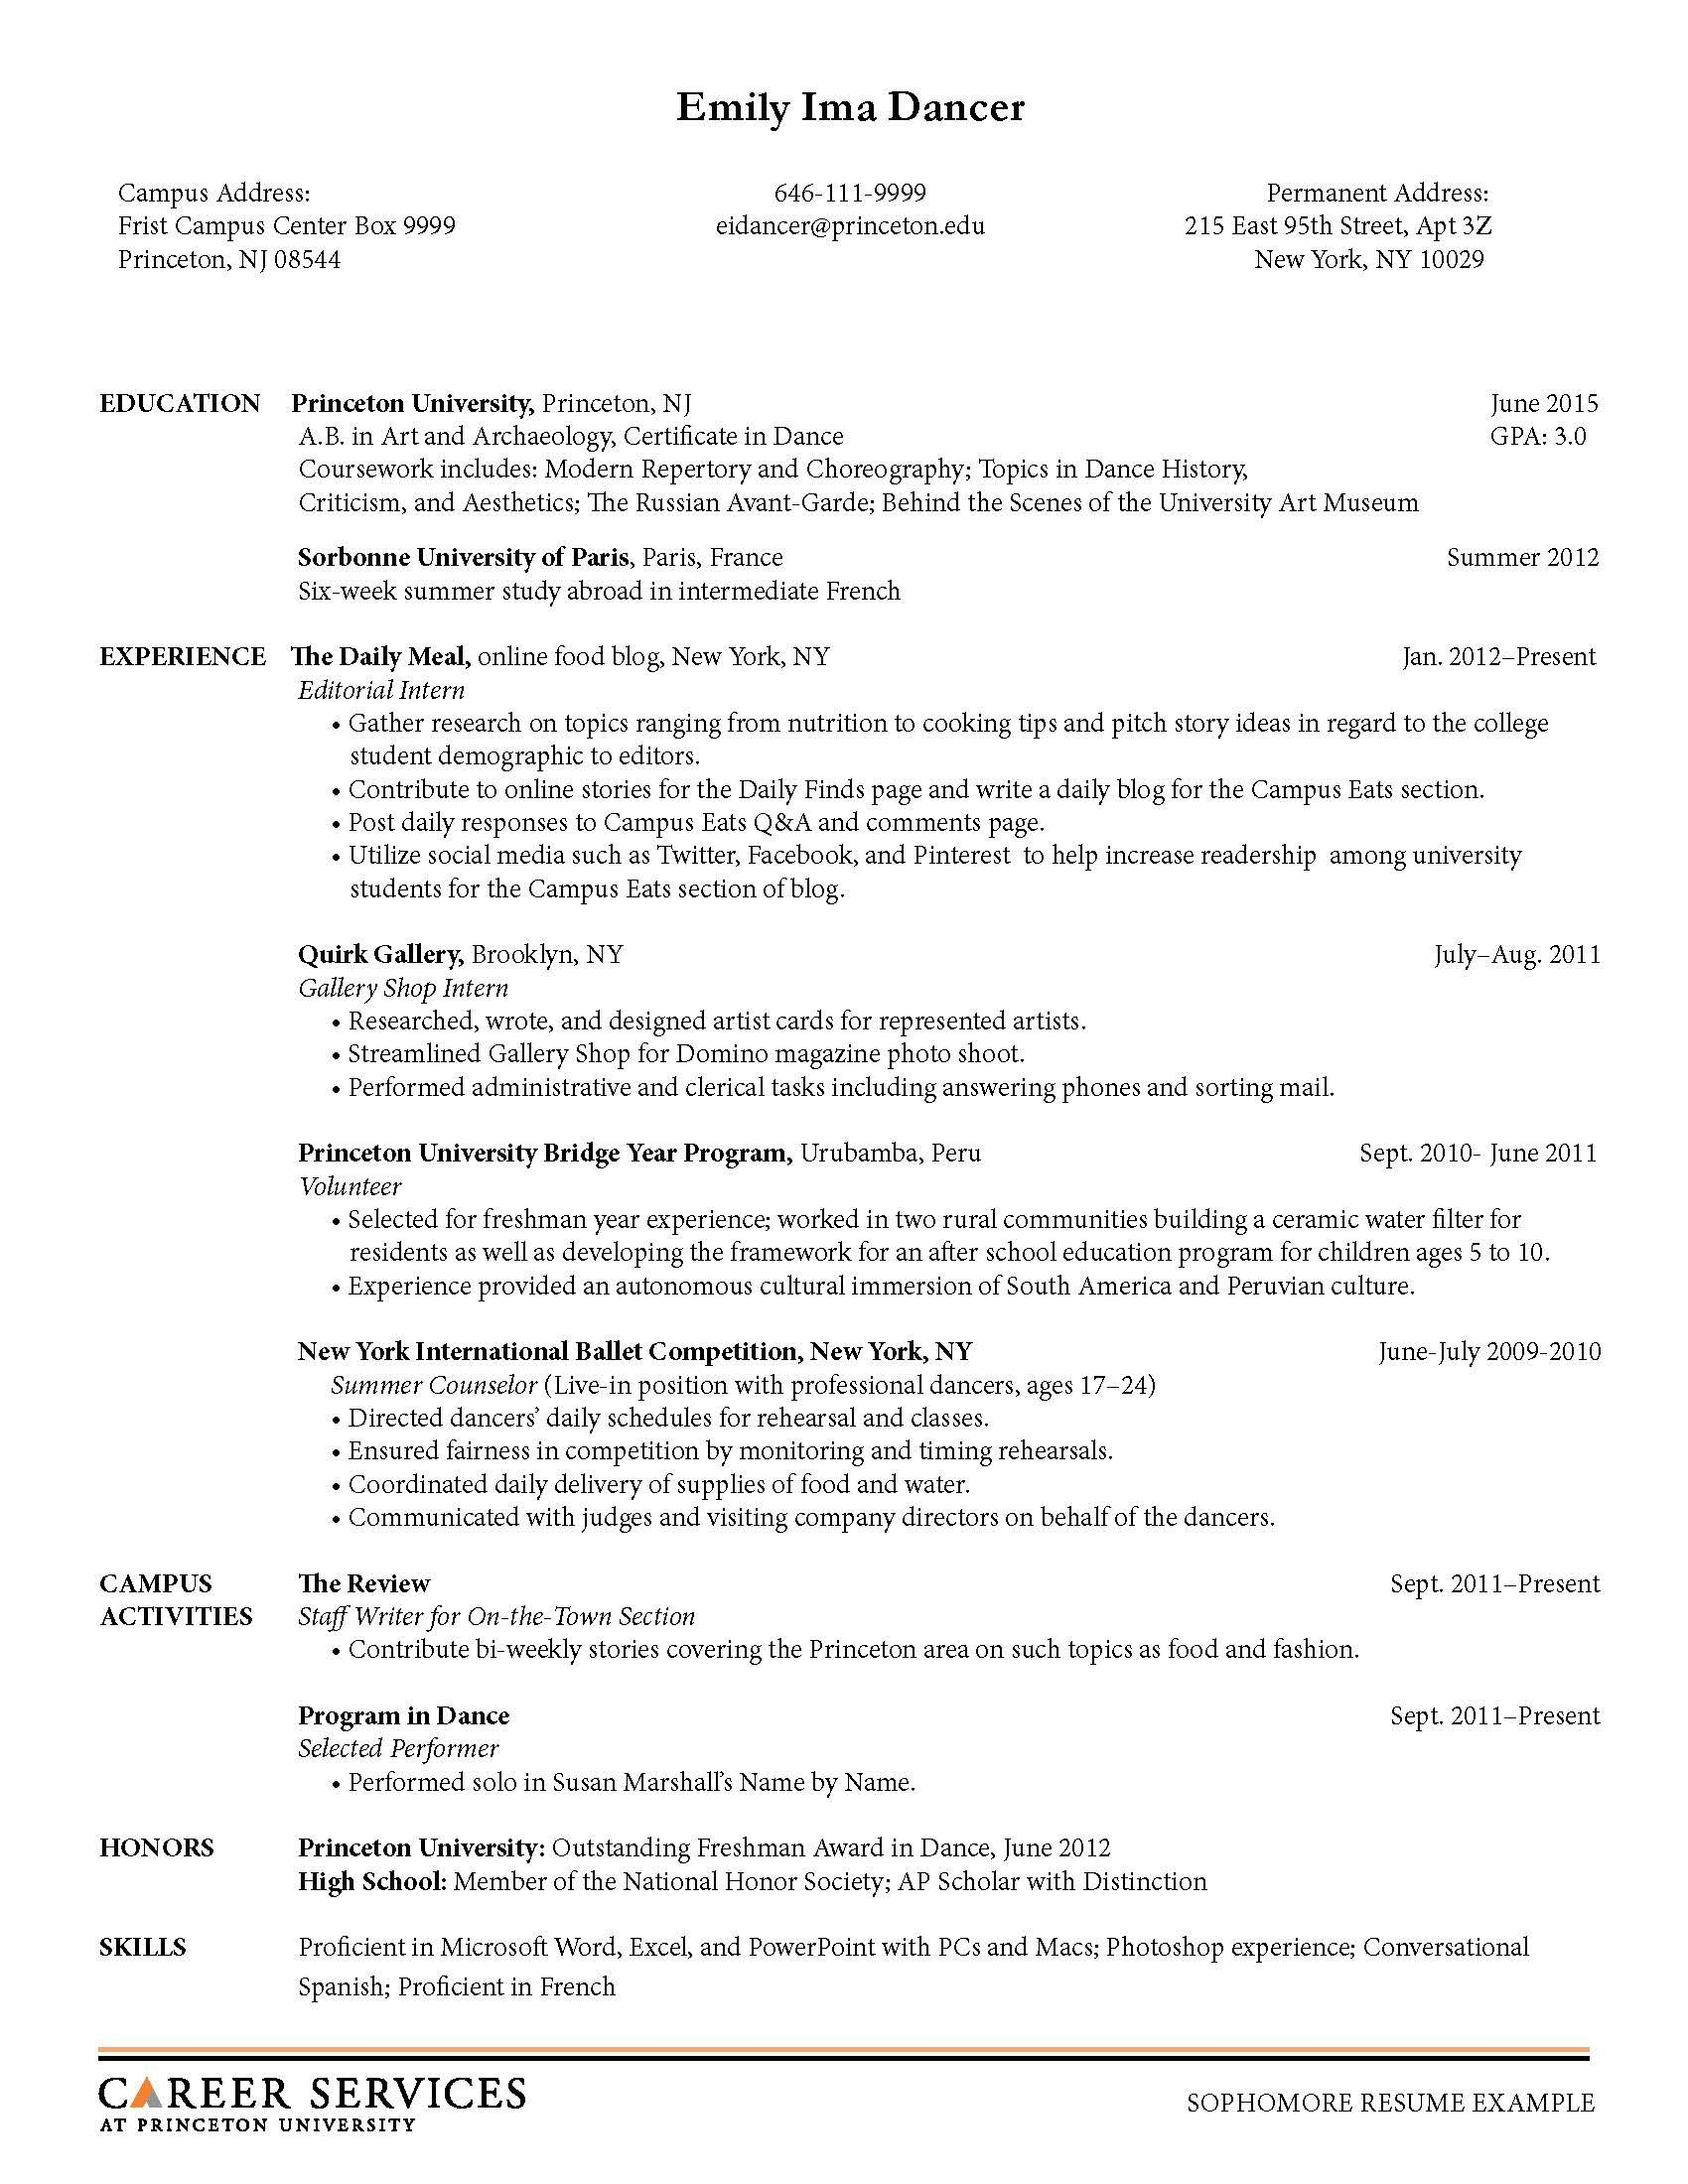 Picnictoimpeachus  Picturesque Sample Resume Resume And Career On Pinterest With Entrancing Cover Letter Of Resume Besides Two Page Resume Format Furthermore Resume Latex Template With Enchanting Resume Letter Sample Also Receptionist Resume Examples In Addition Best Font To Use On Resume And One Page Resume Examples As Well As Resume Paper Target Additionally Resume Requirements From Pinterestcom With Picnictoimpeachus  Entrancing Sample Resume Resume And Career On Pinterest With Enchanting Cover Letter Of Resume Besides Two Page Resume Format Furthermore Resume Latex Template And Picturesque Resume Letter Sample Also Receptionist Resume Examples In Addition Best Font To Use On Resume From Pinterestcom